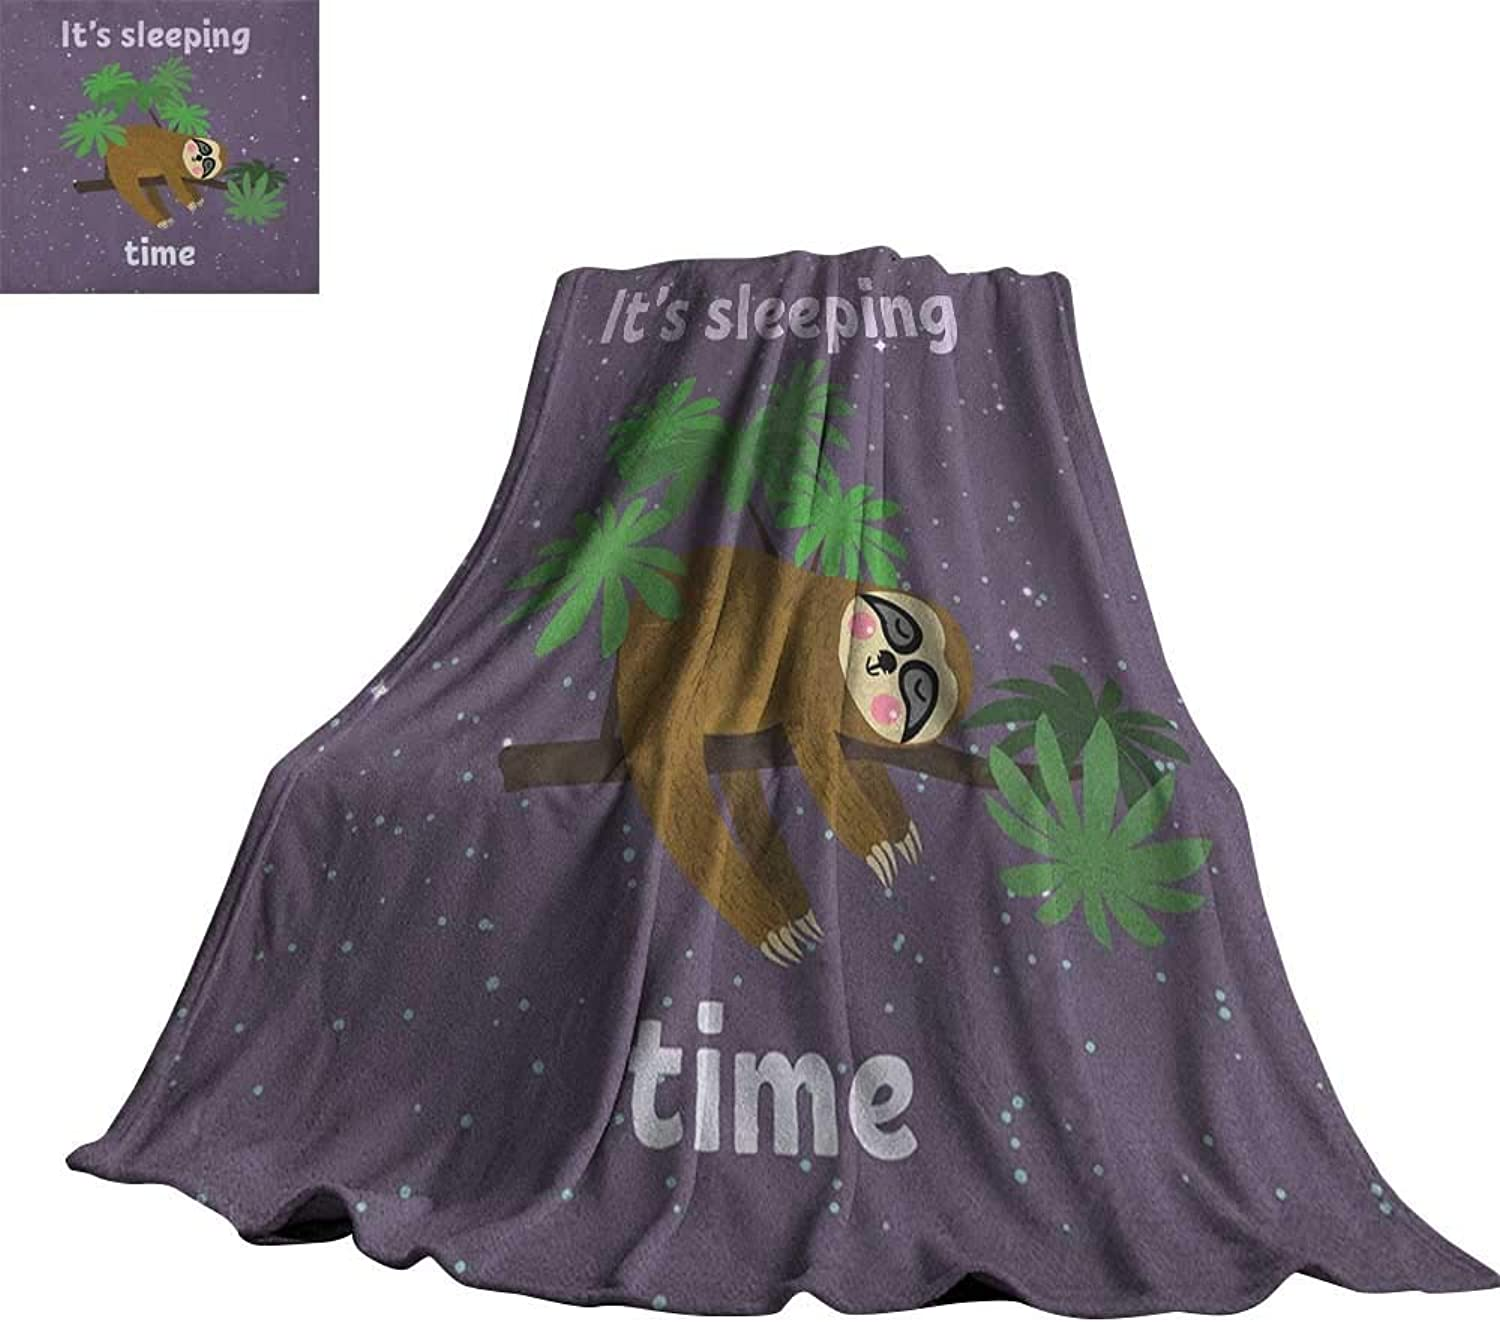 RenteriaDecor Sloth,Warm Blanket Cute Cartoon Character Sleeping on Branch Jungle Animal in Night Sky Kids Theme Throws for Couch Bed Living Room 70 x50